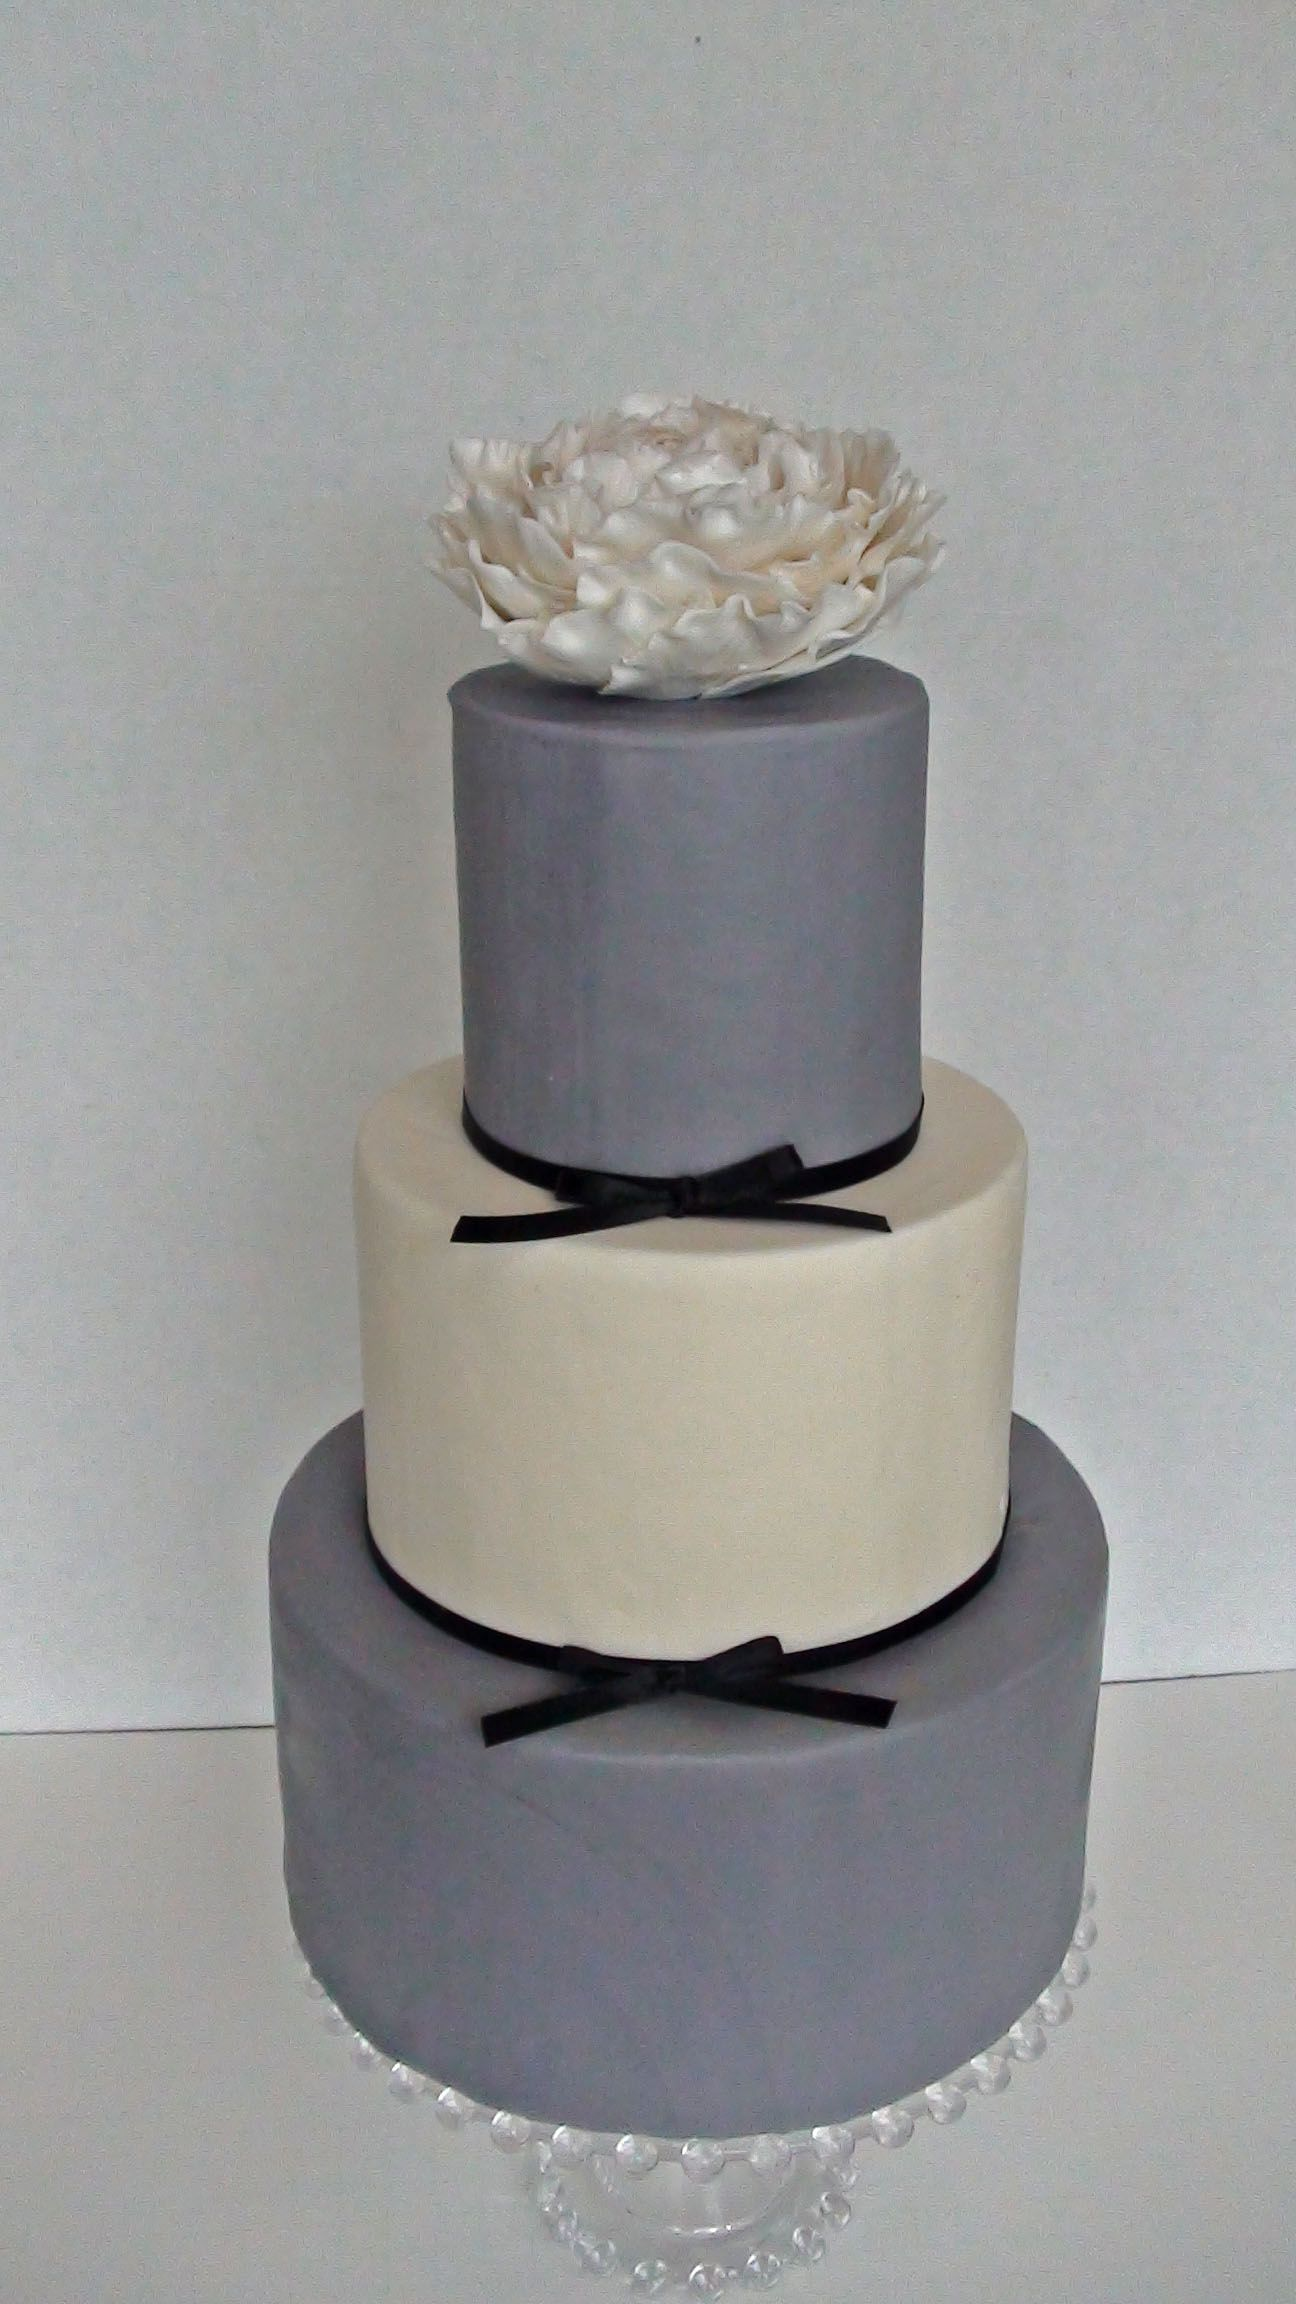 Shan check out this gray wedding cake Gray and White Wedding cake